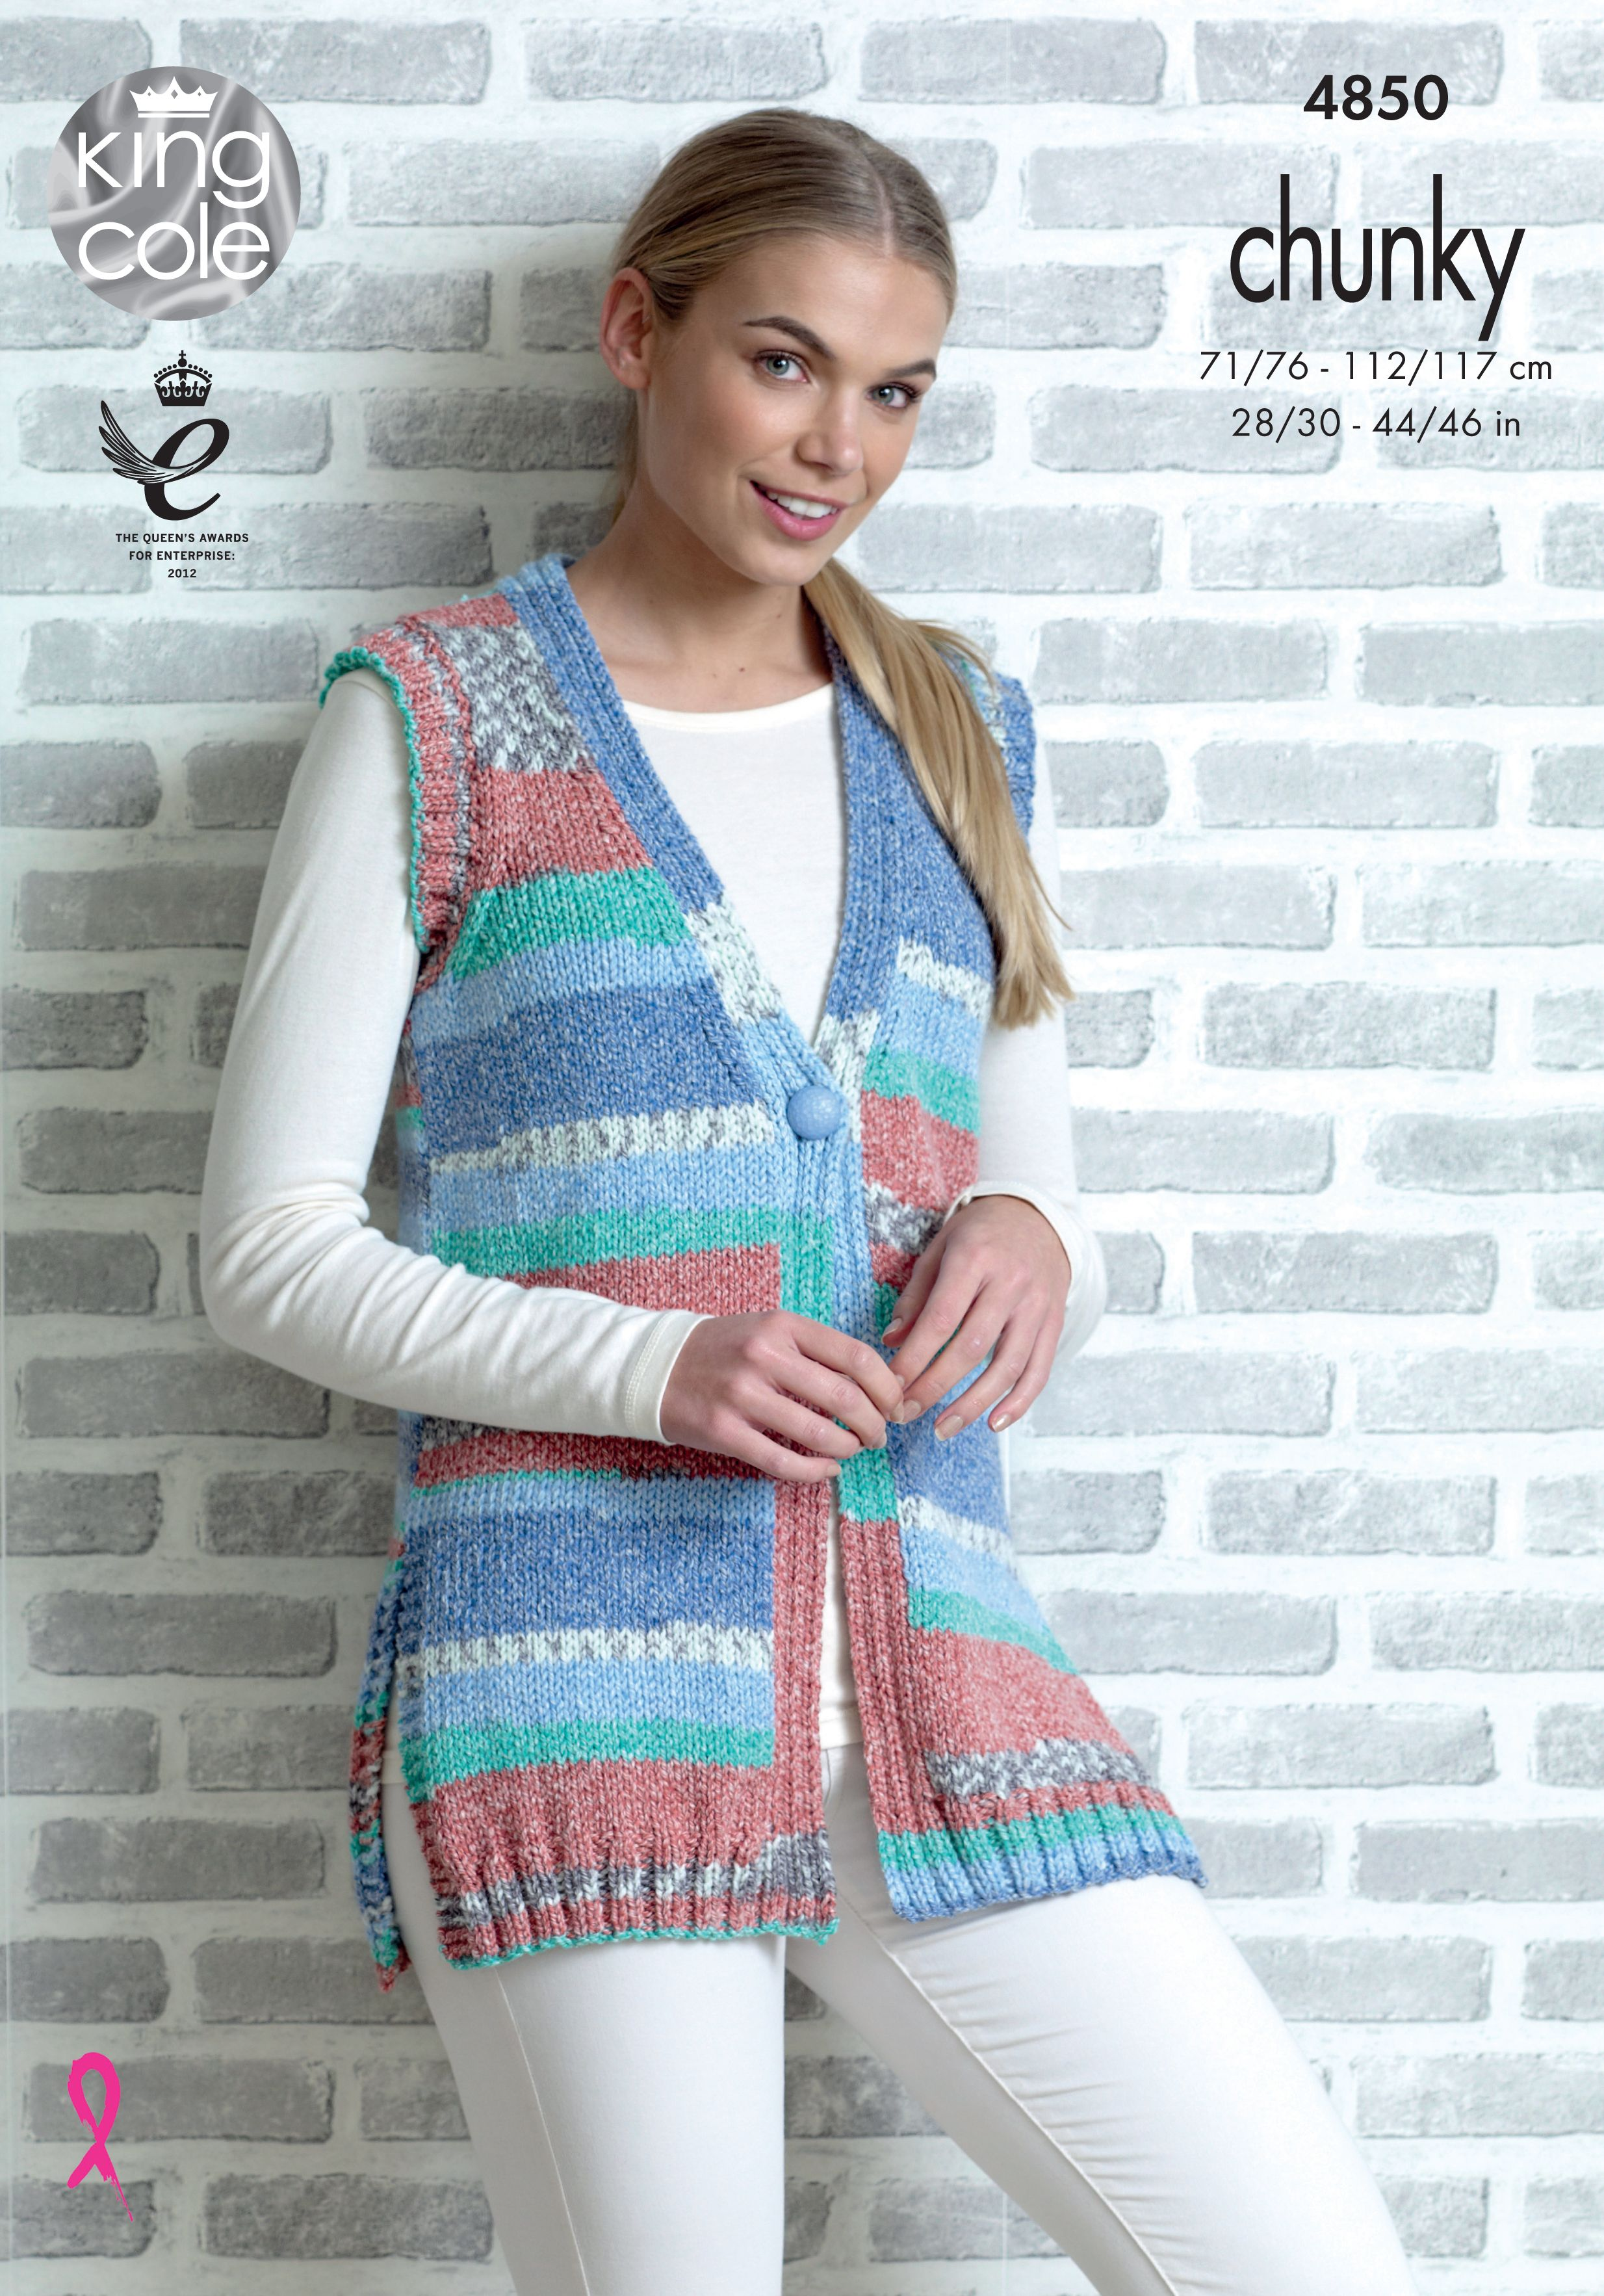 a69a33fde6a5 Cardigan   Waistcoat knitted with Drifter Chunky - King Cole ...